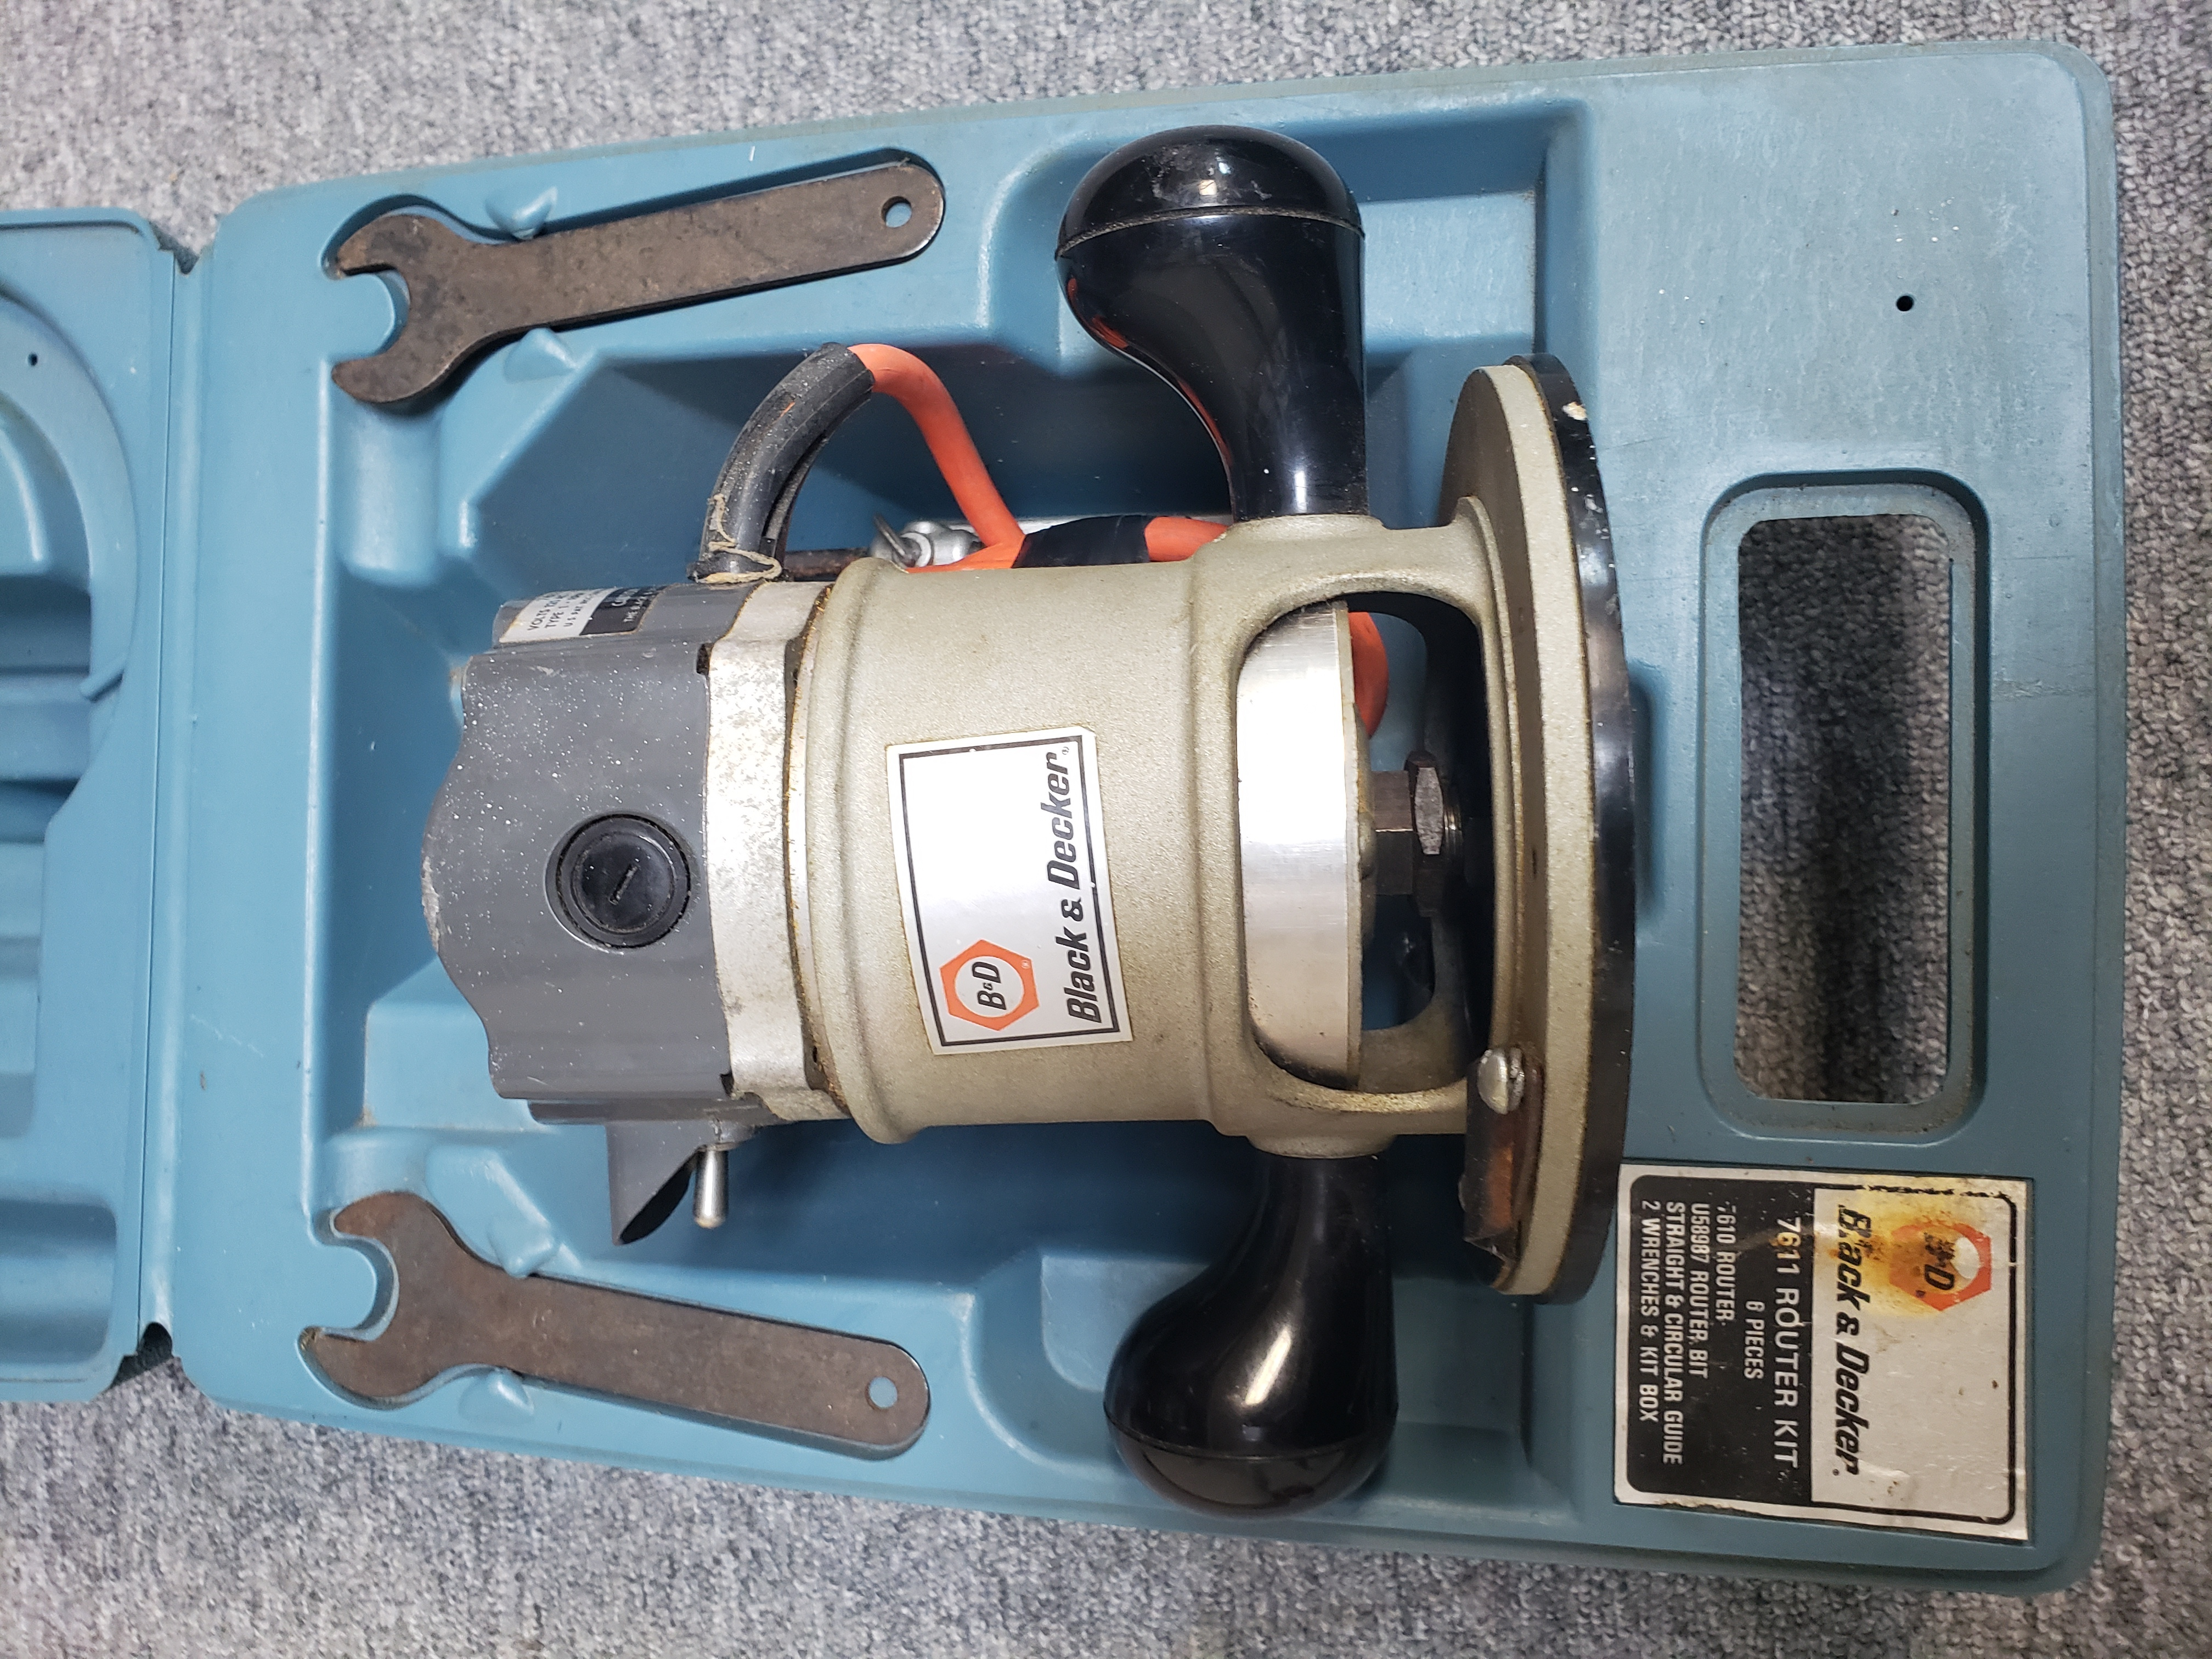 BLACK & DECKER ROUTER TOOL